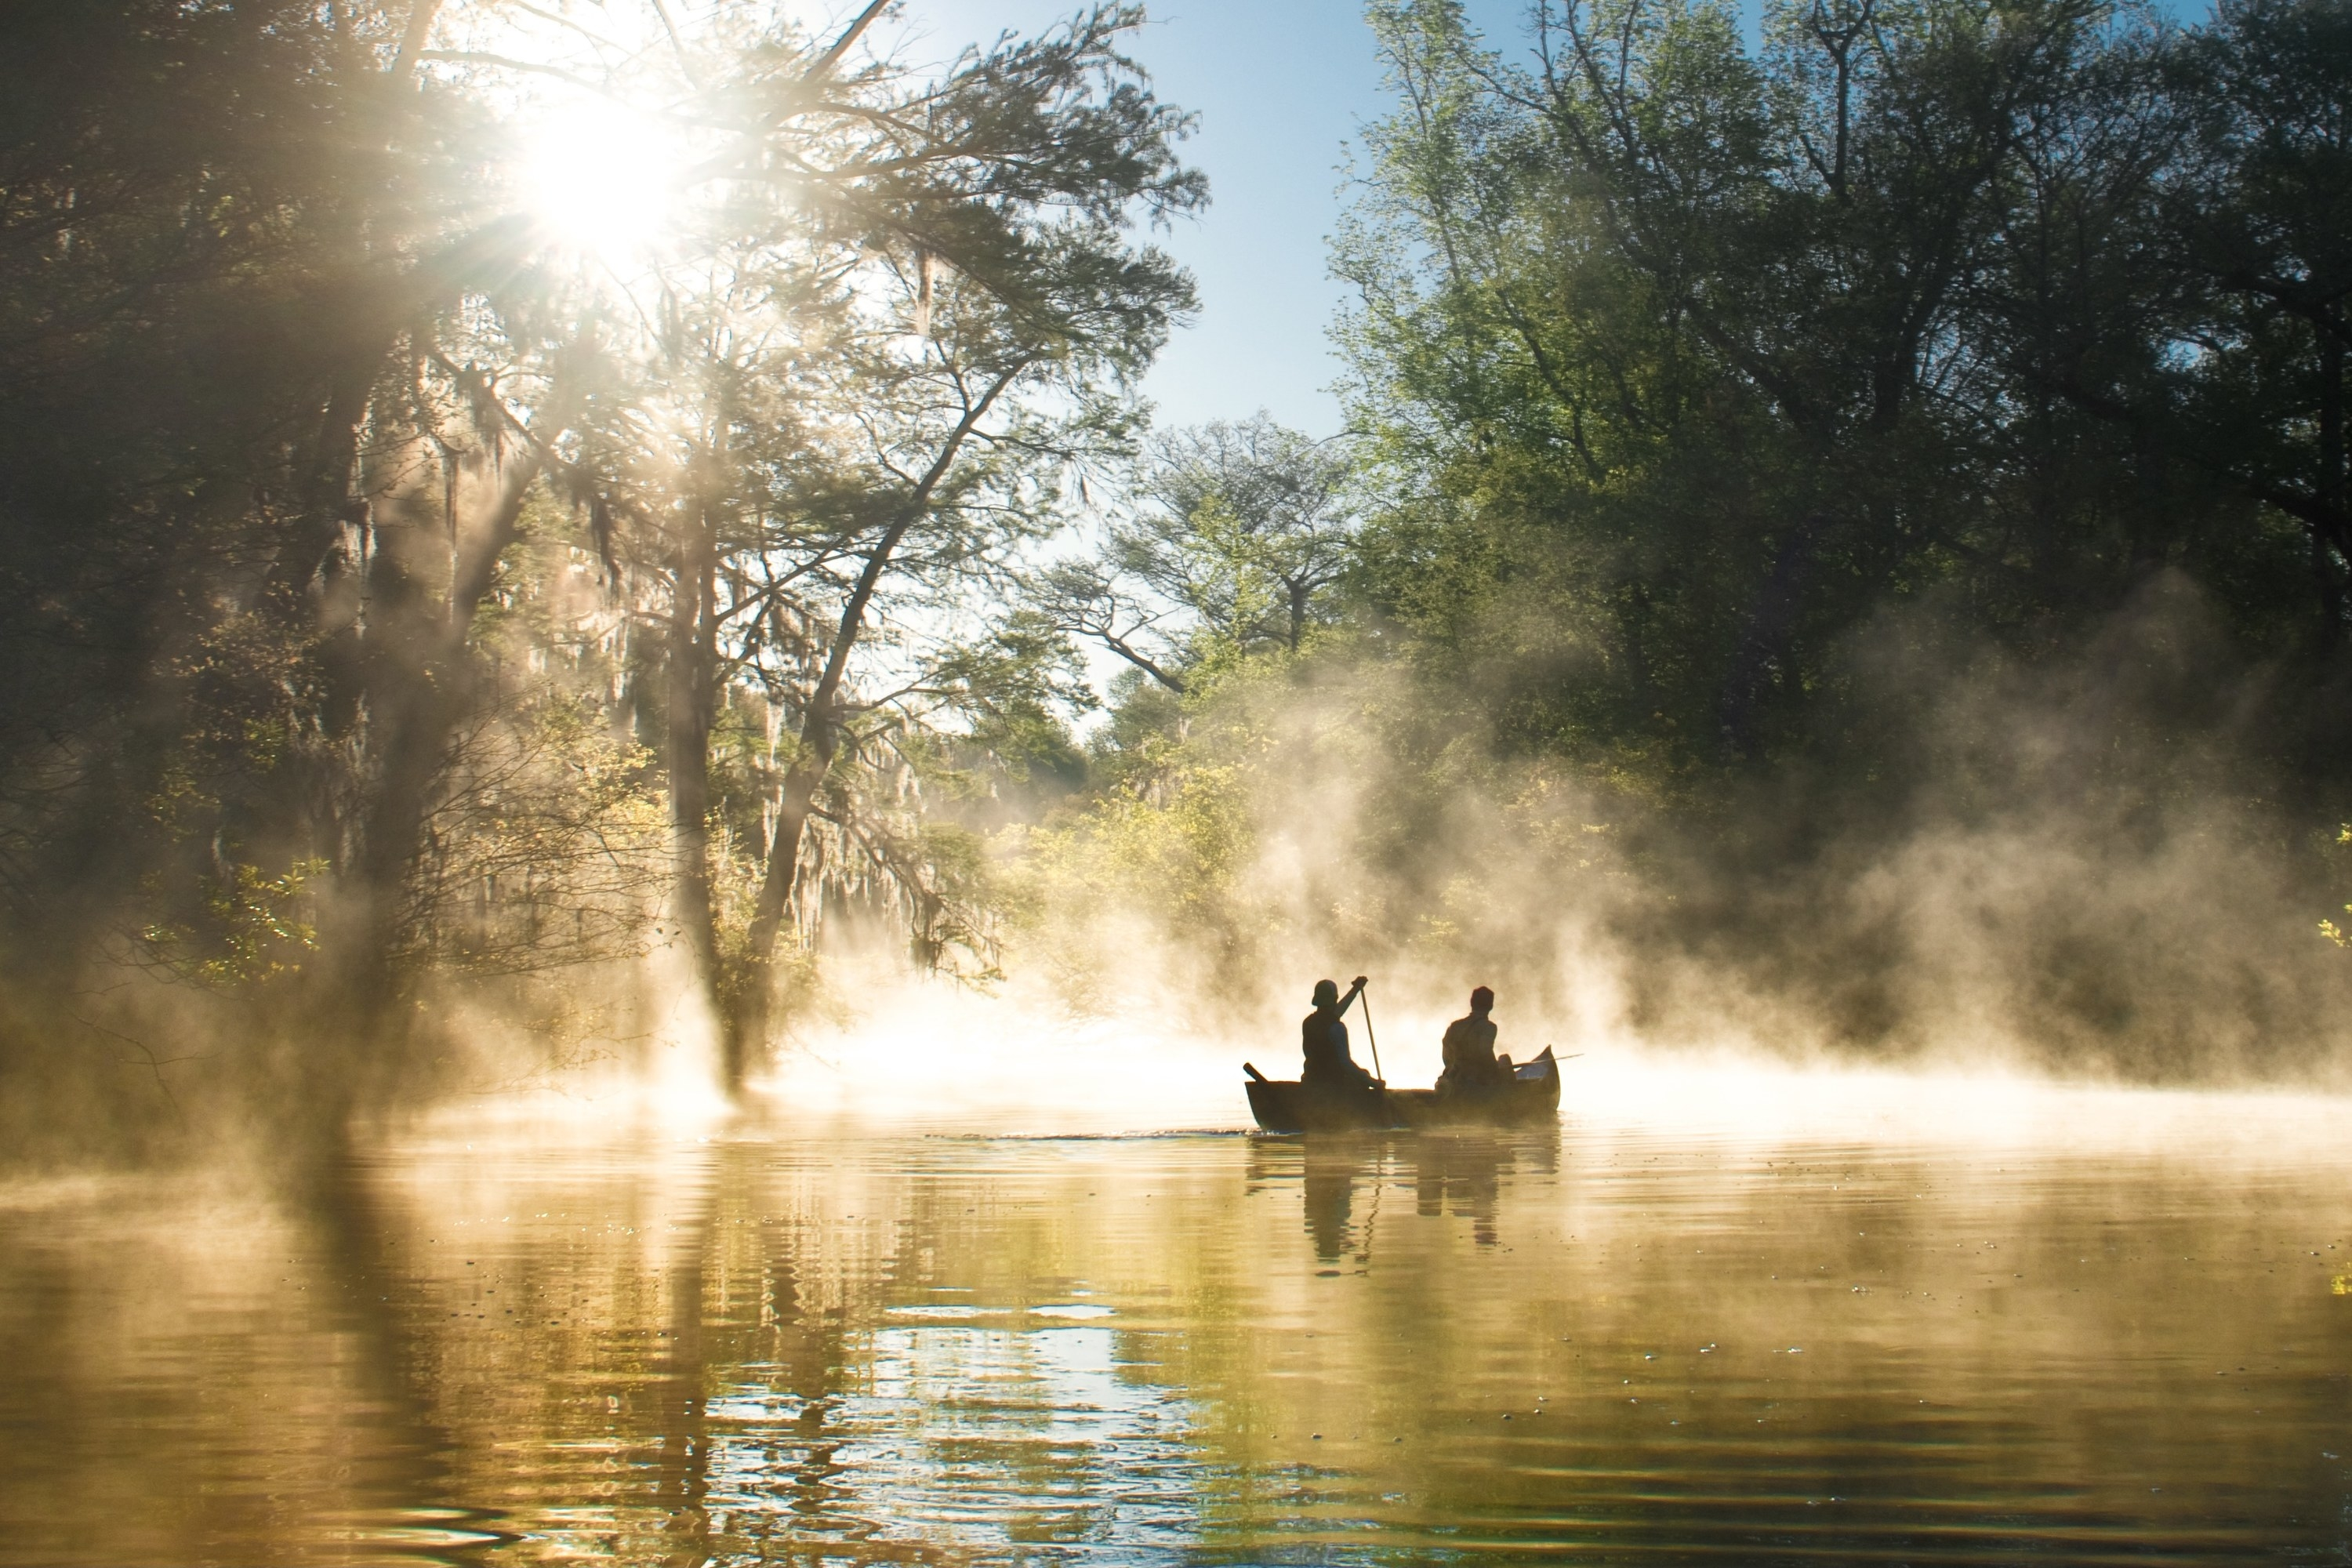 Two people on a canoe paddle through the everglades with sunshine illuminating the mid-afternoon fog around them.